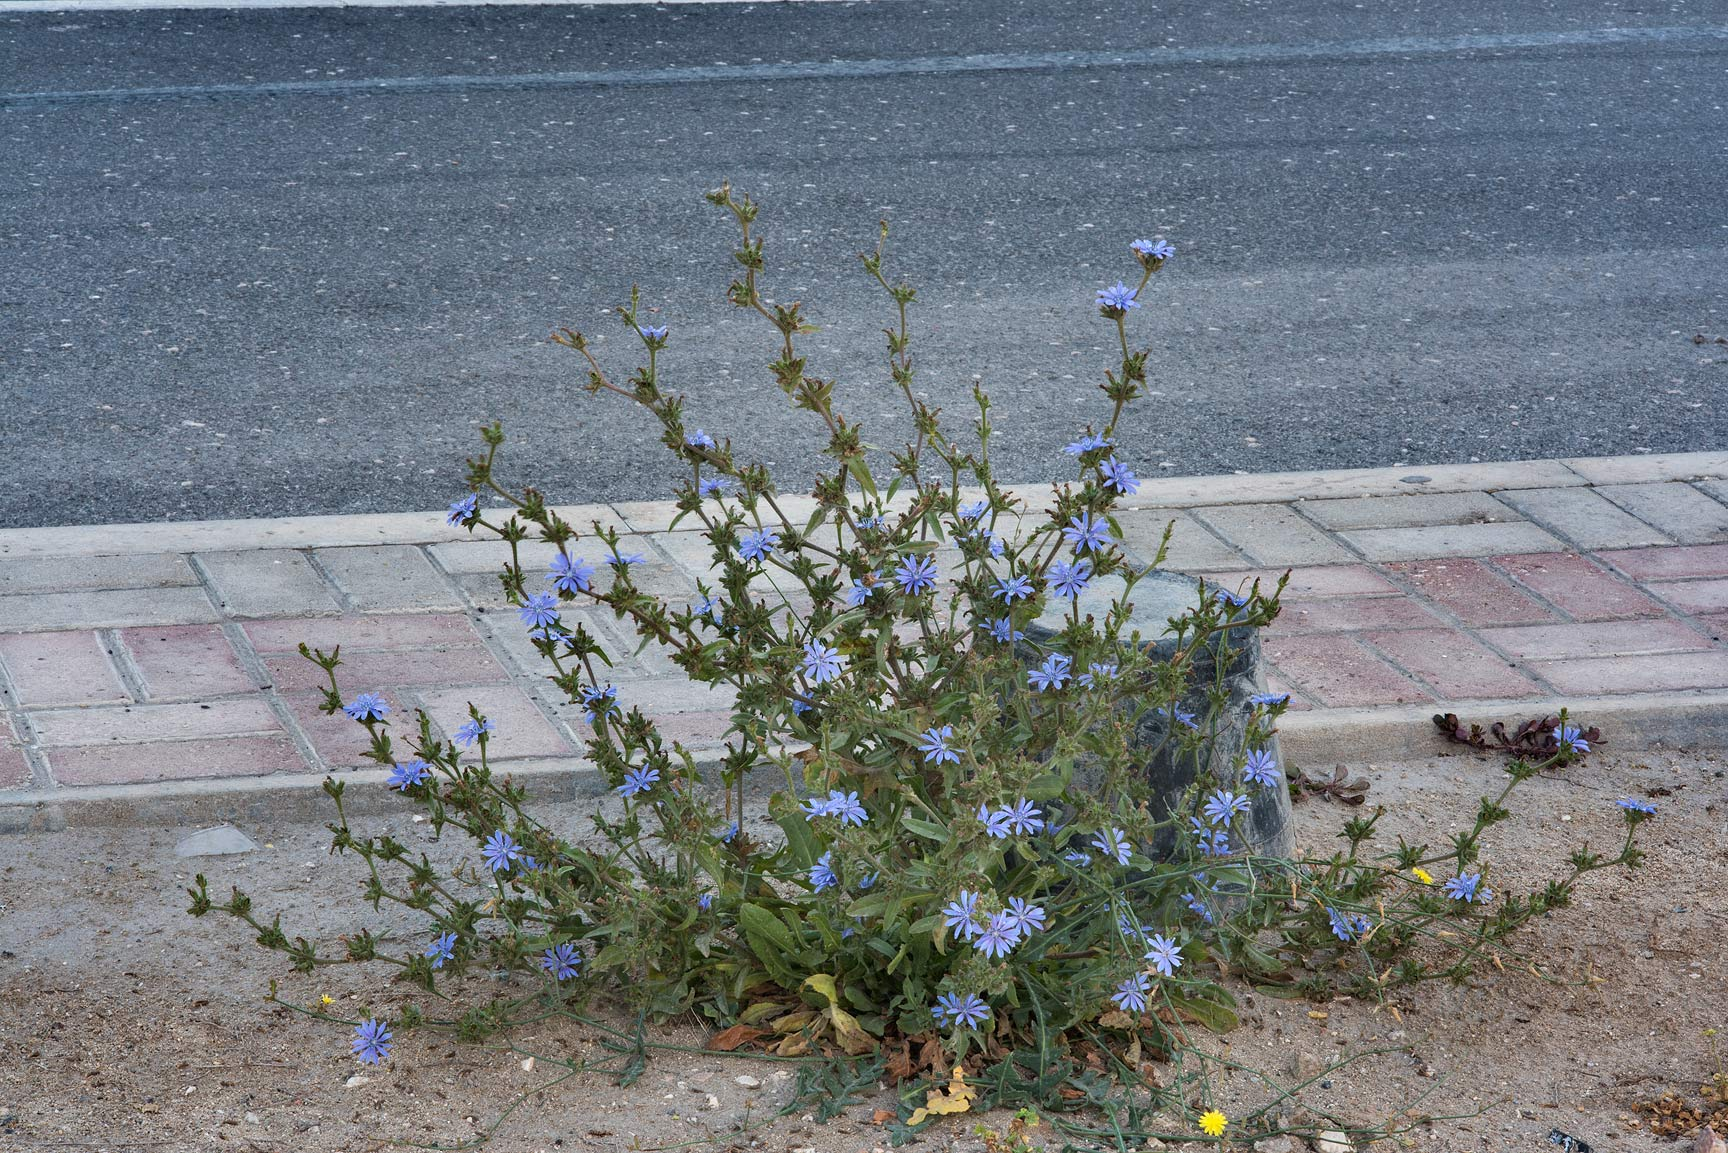 Chicory plant (Cichorium pumilum) on the median...St. in Onaiza area. Doha, Qatar